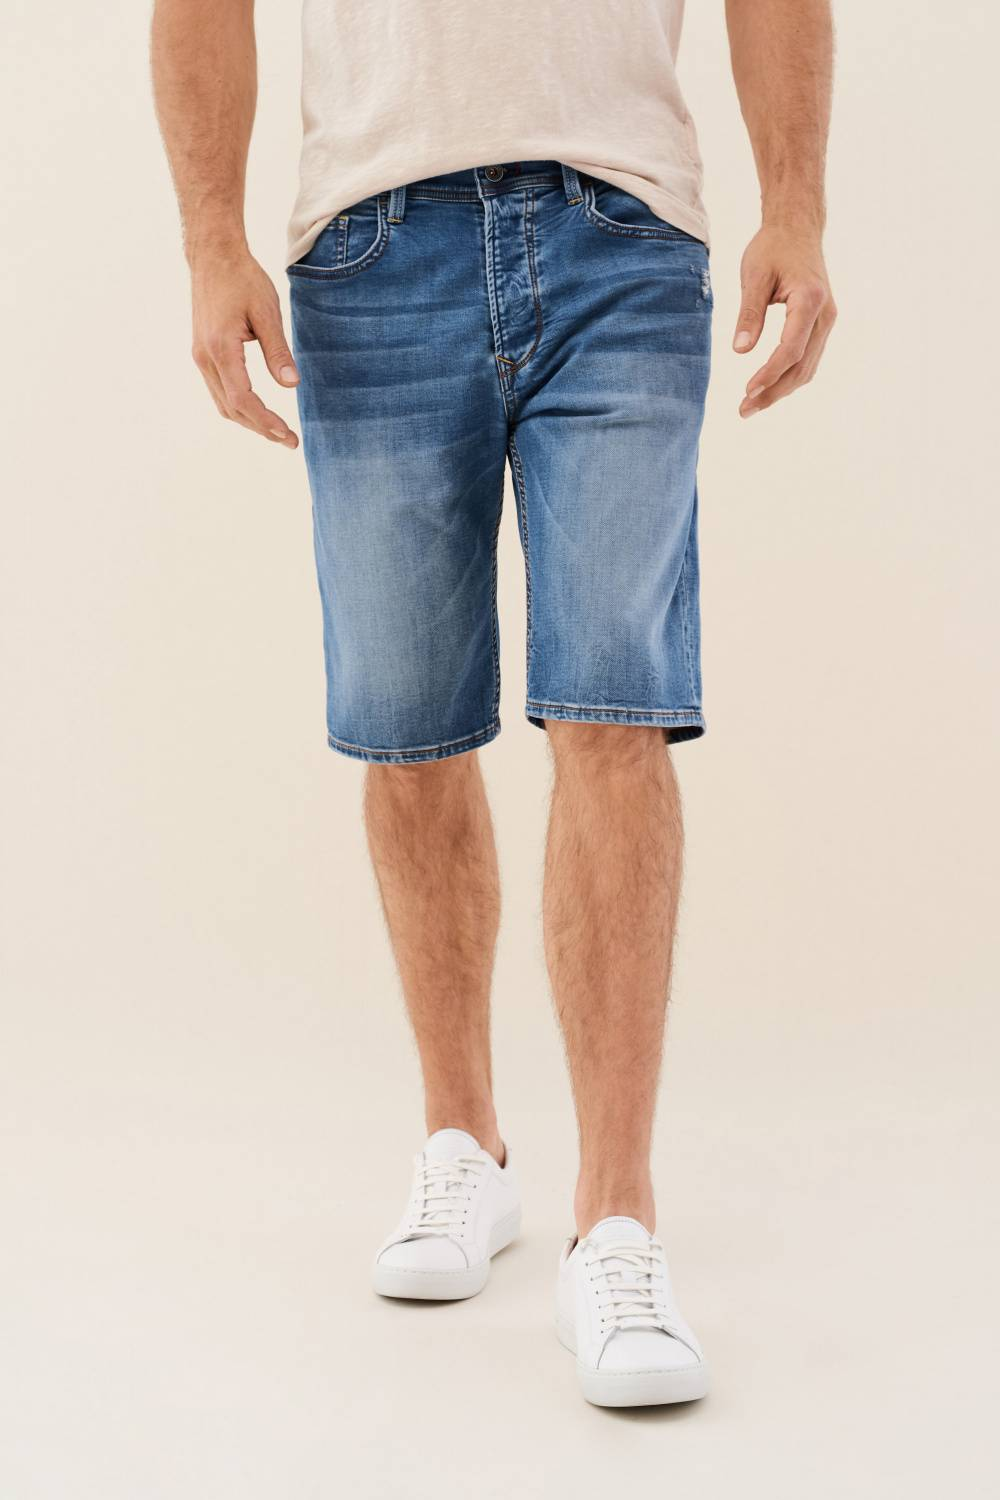 Shorts Loose Jogger, aus hellem Denim - Salsa